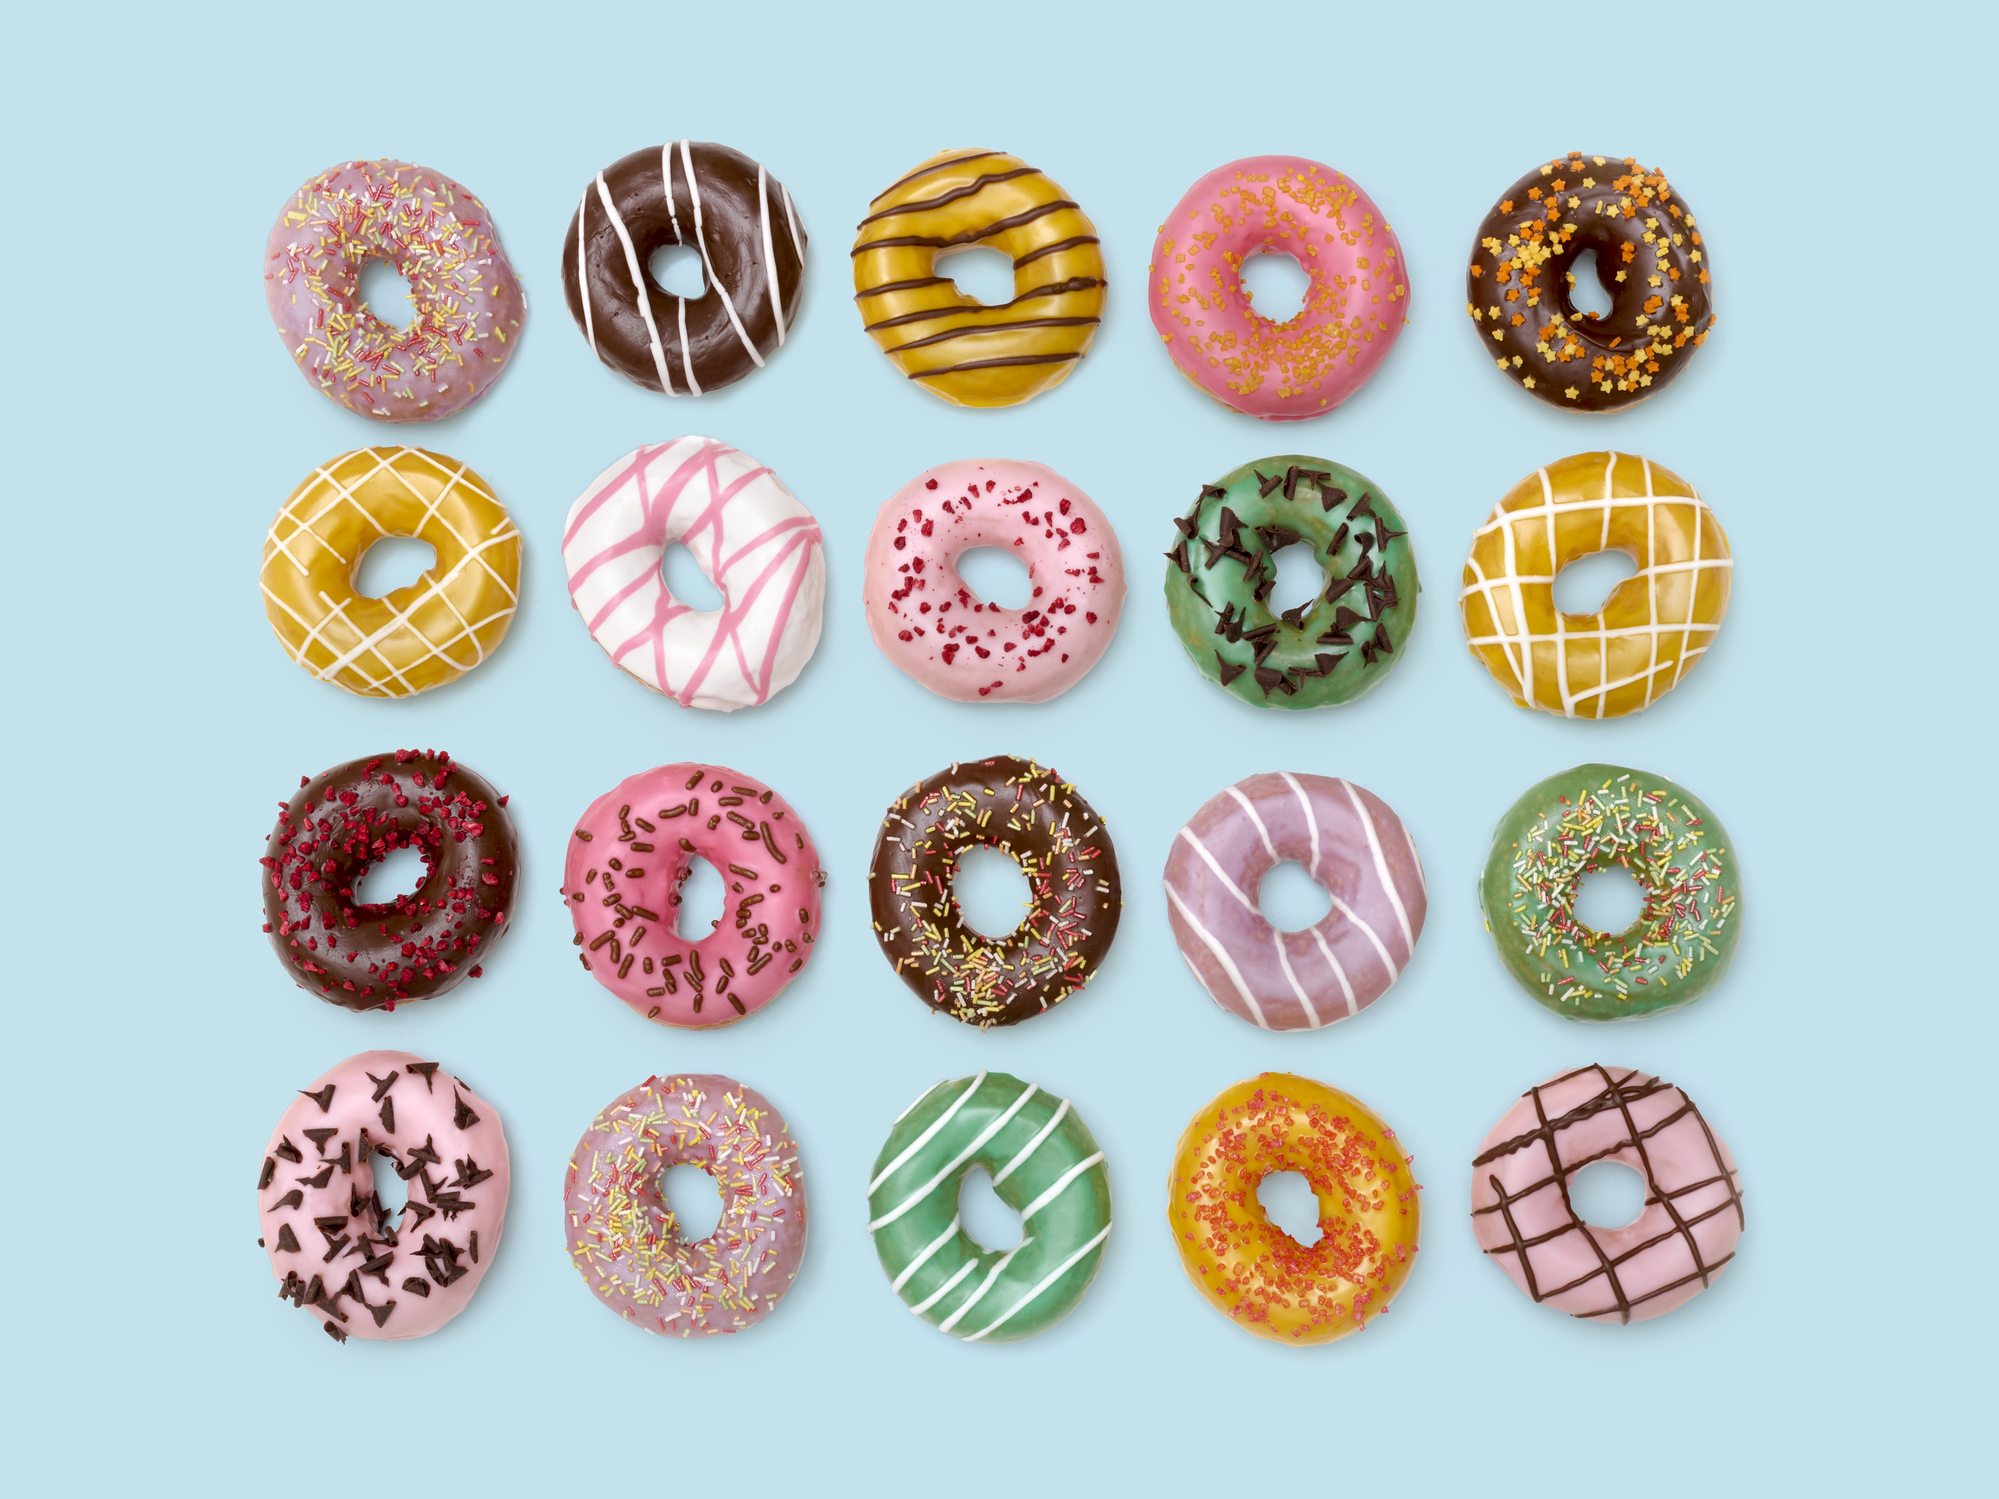 10. A Dozen (Or So) Doughnuts